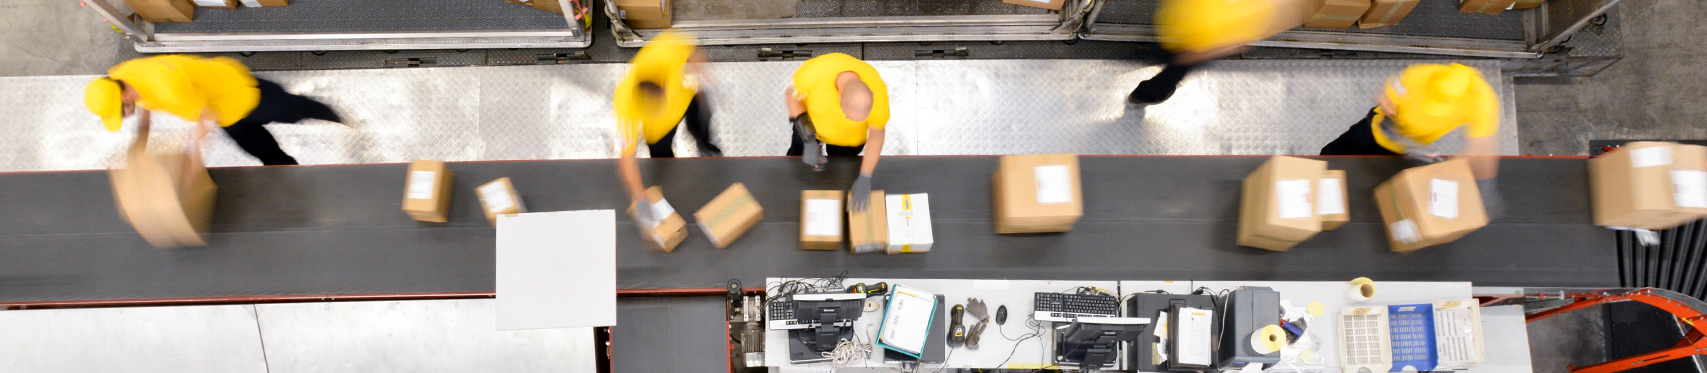 factory workers packing boxes